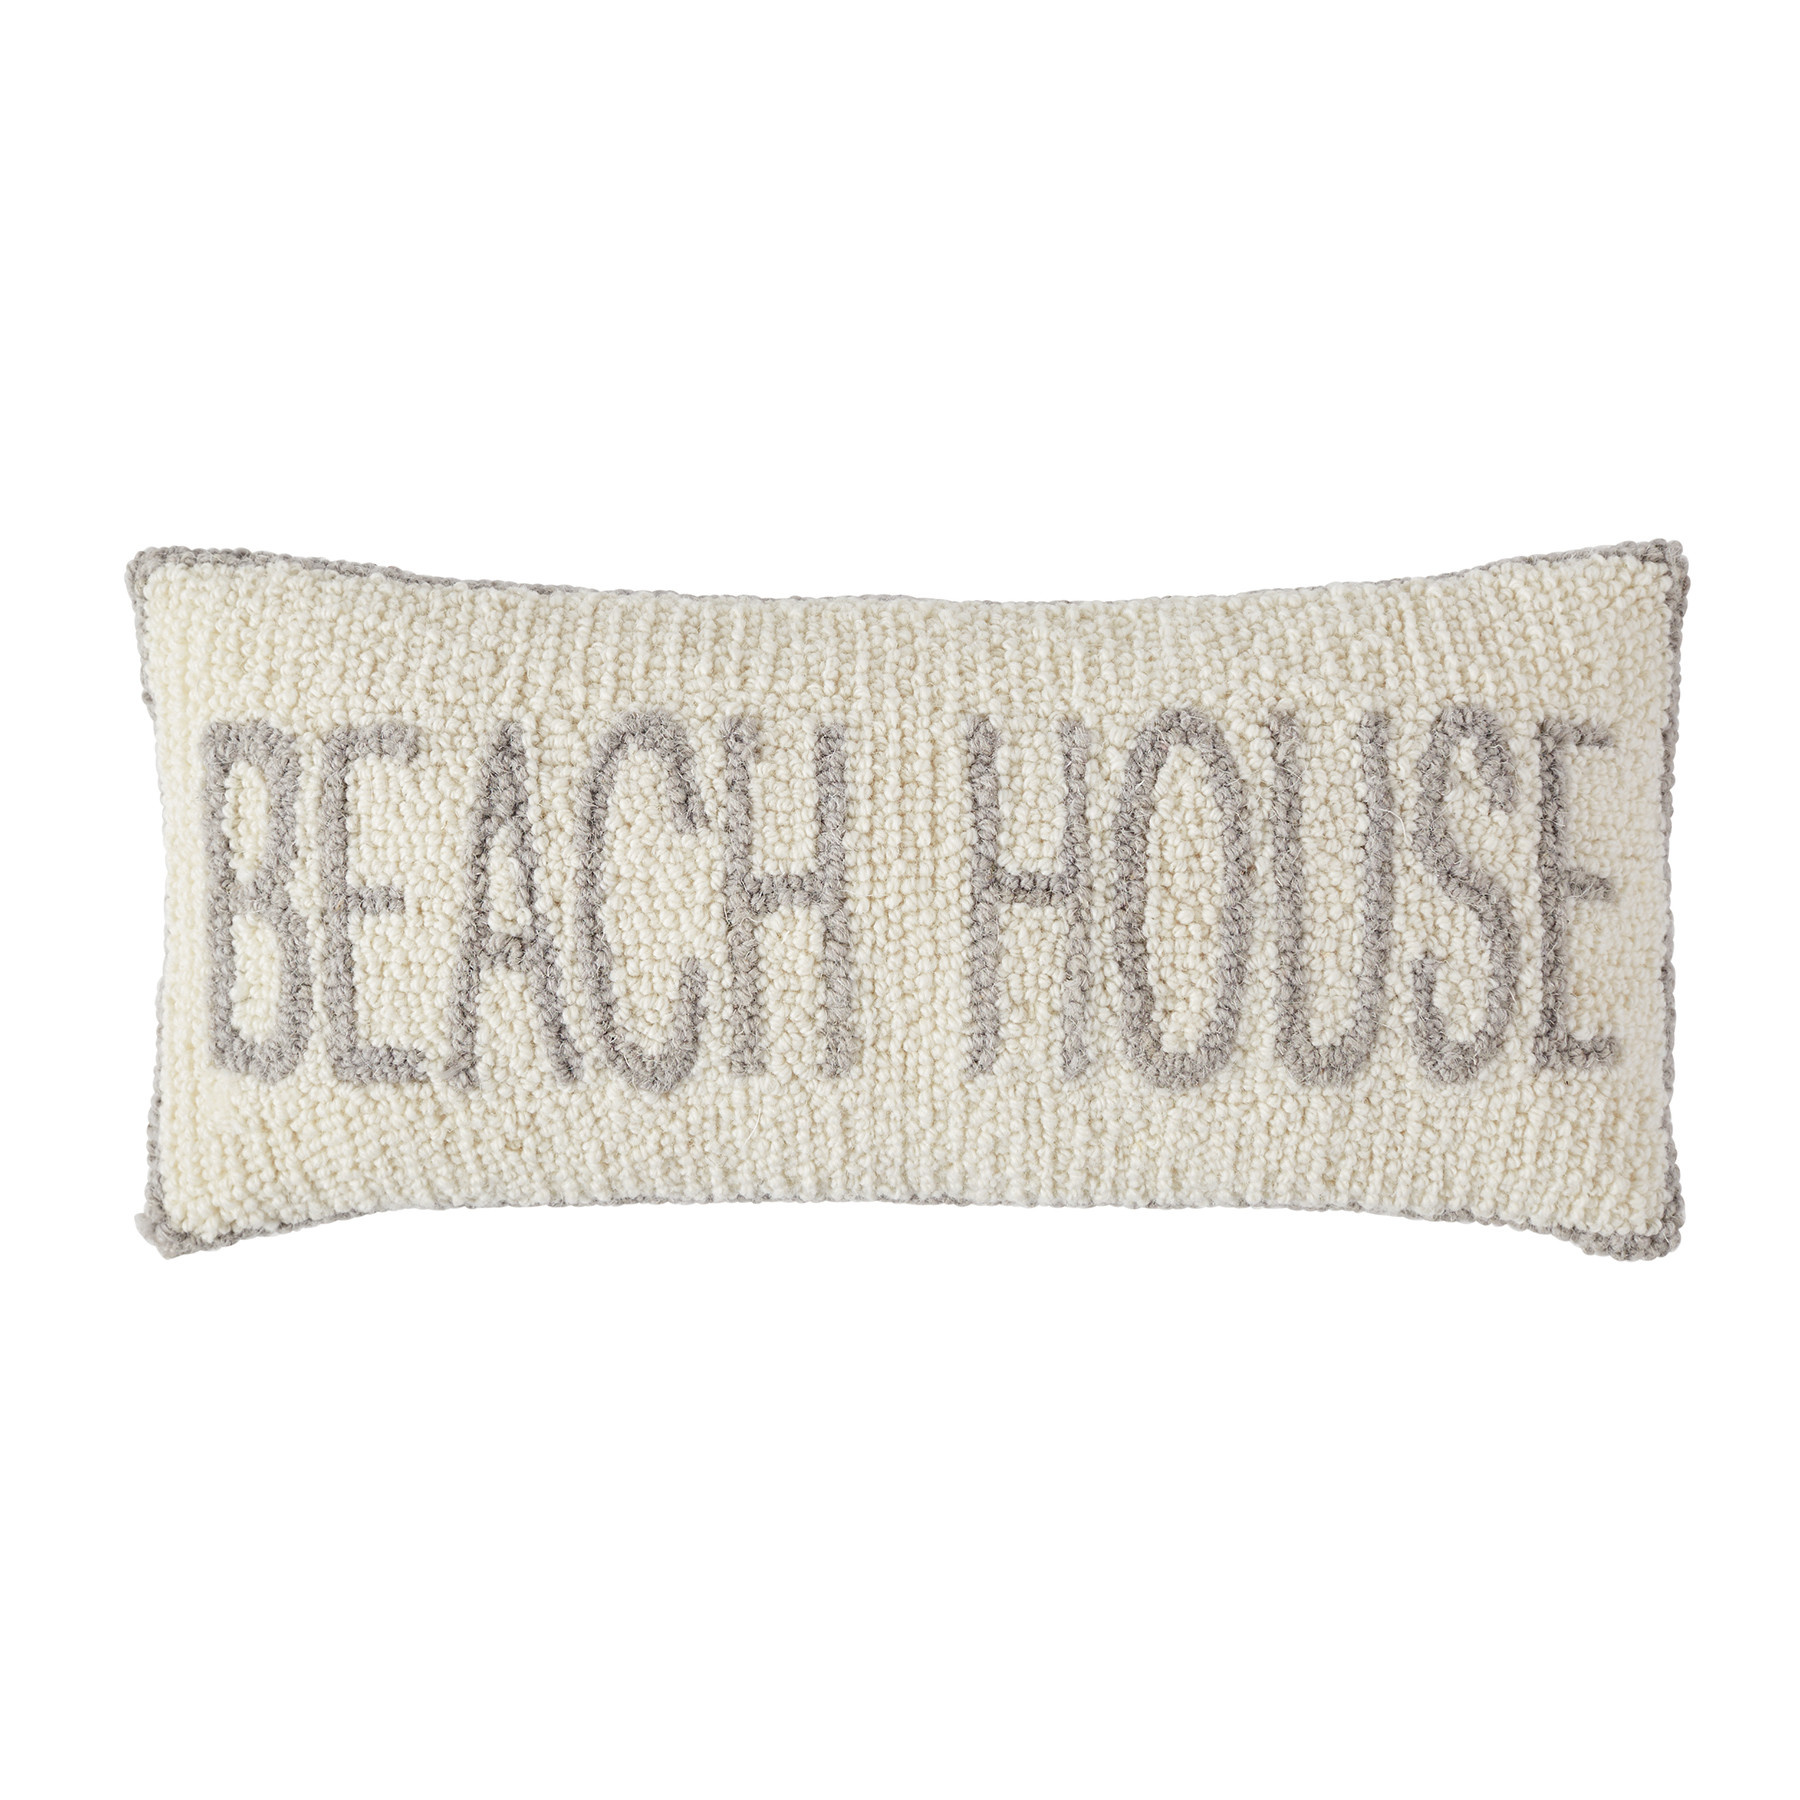 BEACH HOUSE HOOKED WOOL